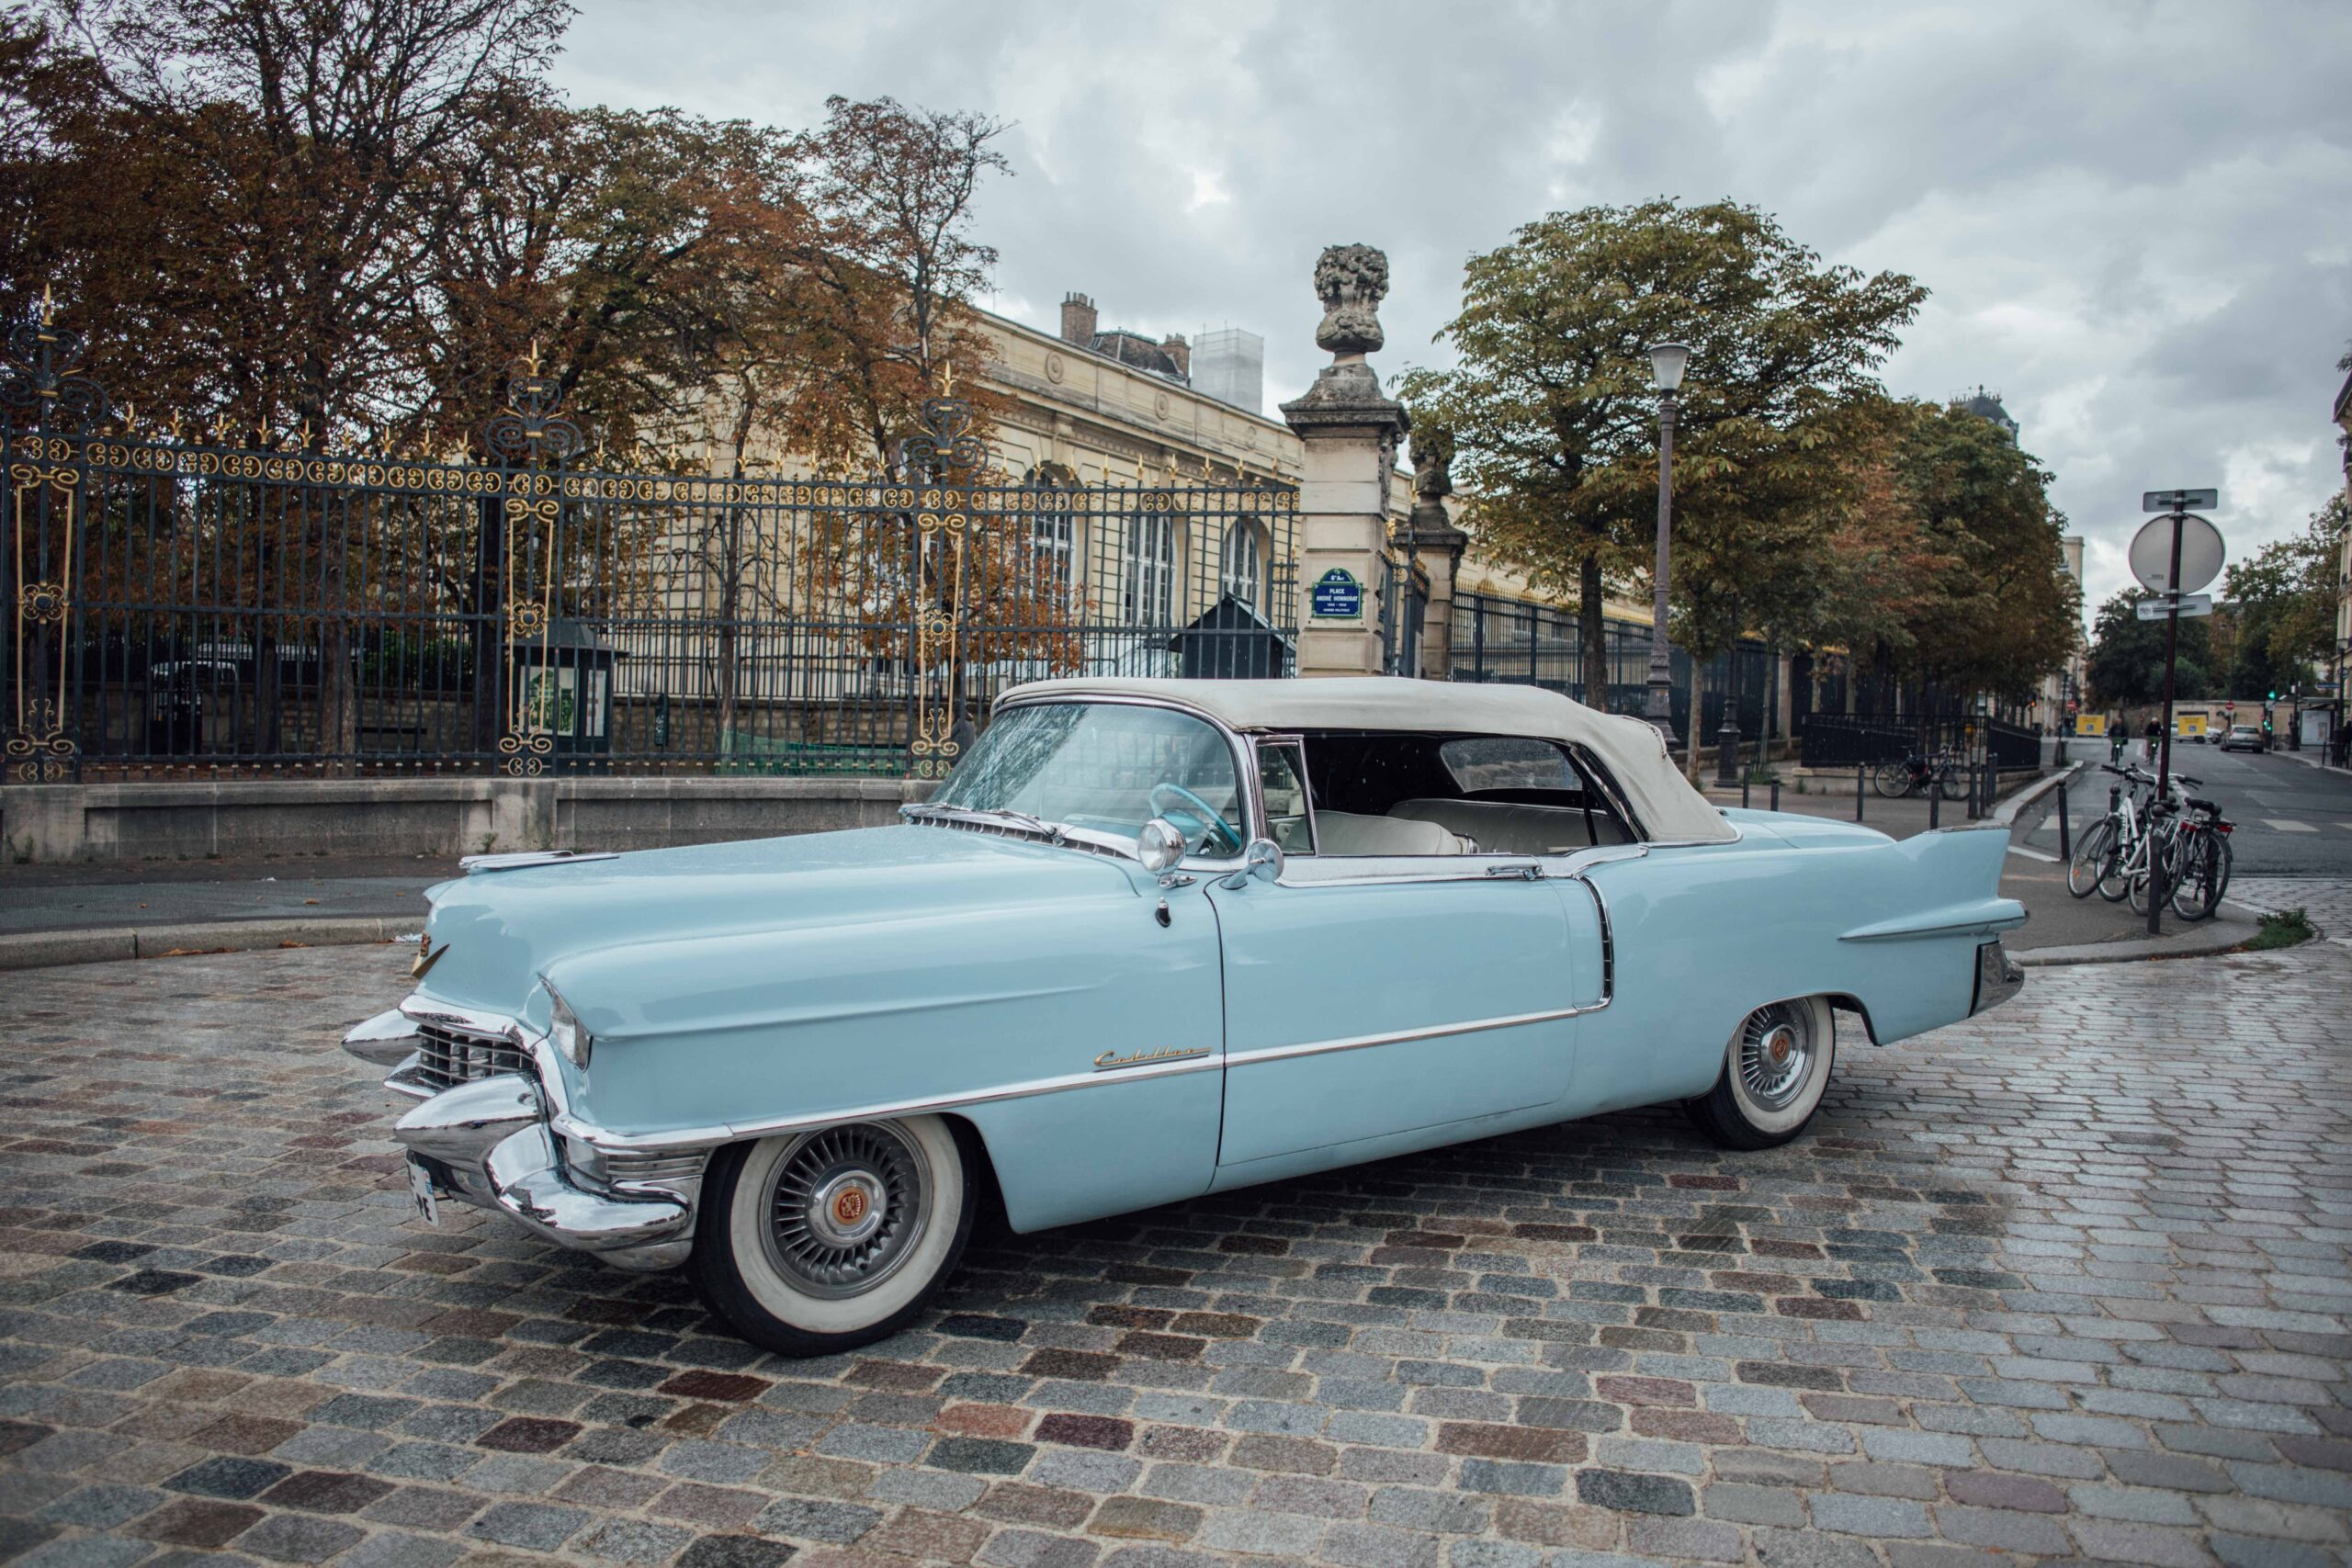 A old blue car is parked on a cobble driveway on a rainy fall day in Paris